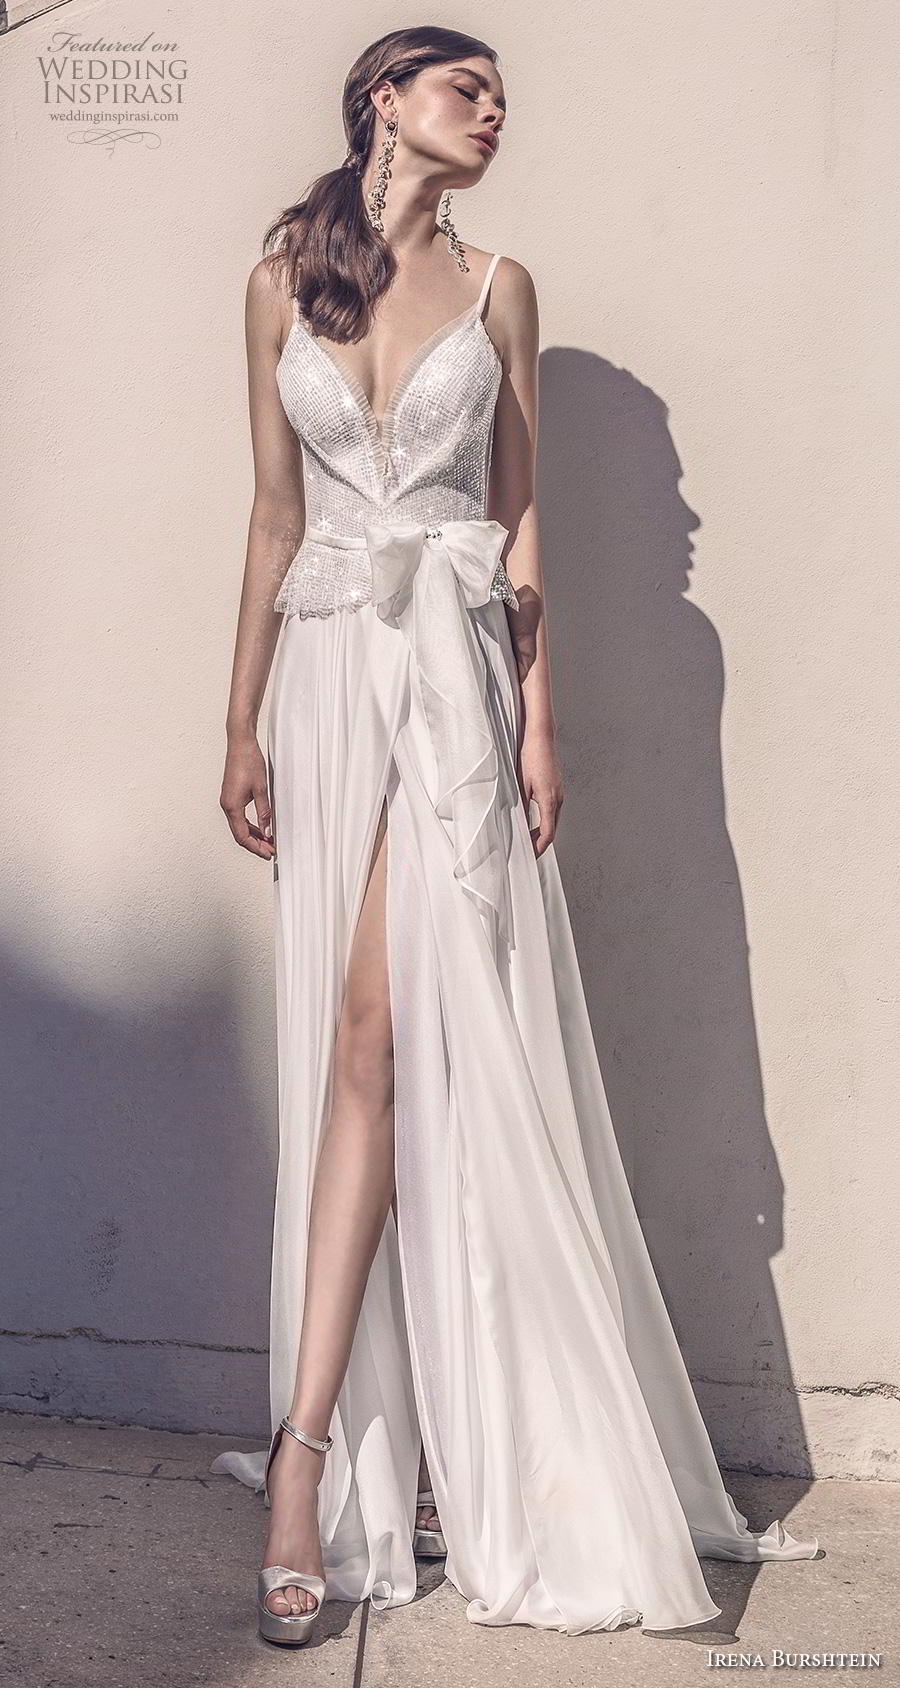 irena burshtein 2020 bridal sleeveless thin strap deep sweetheart neckline heavily embellished bodice slit skirt glamorous soft a  line wedding dress sweep train (8) mv